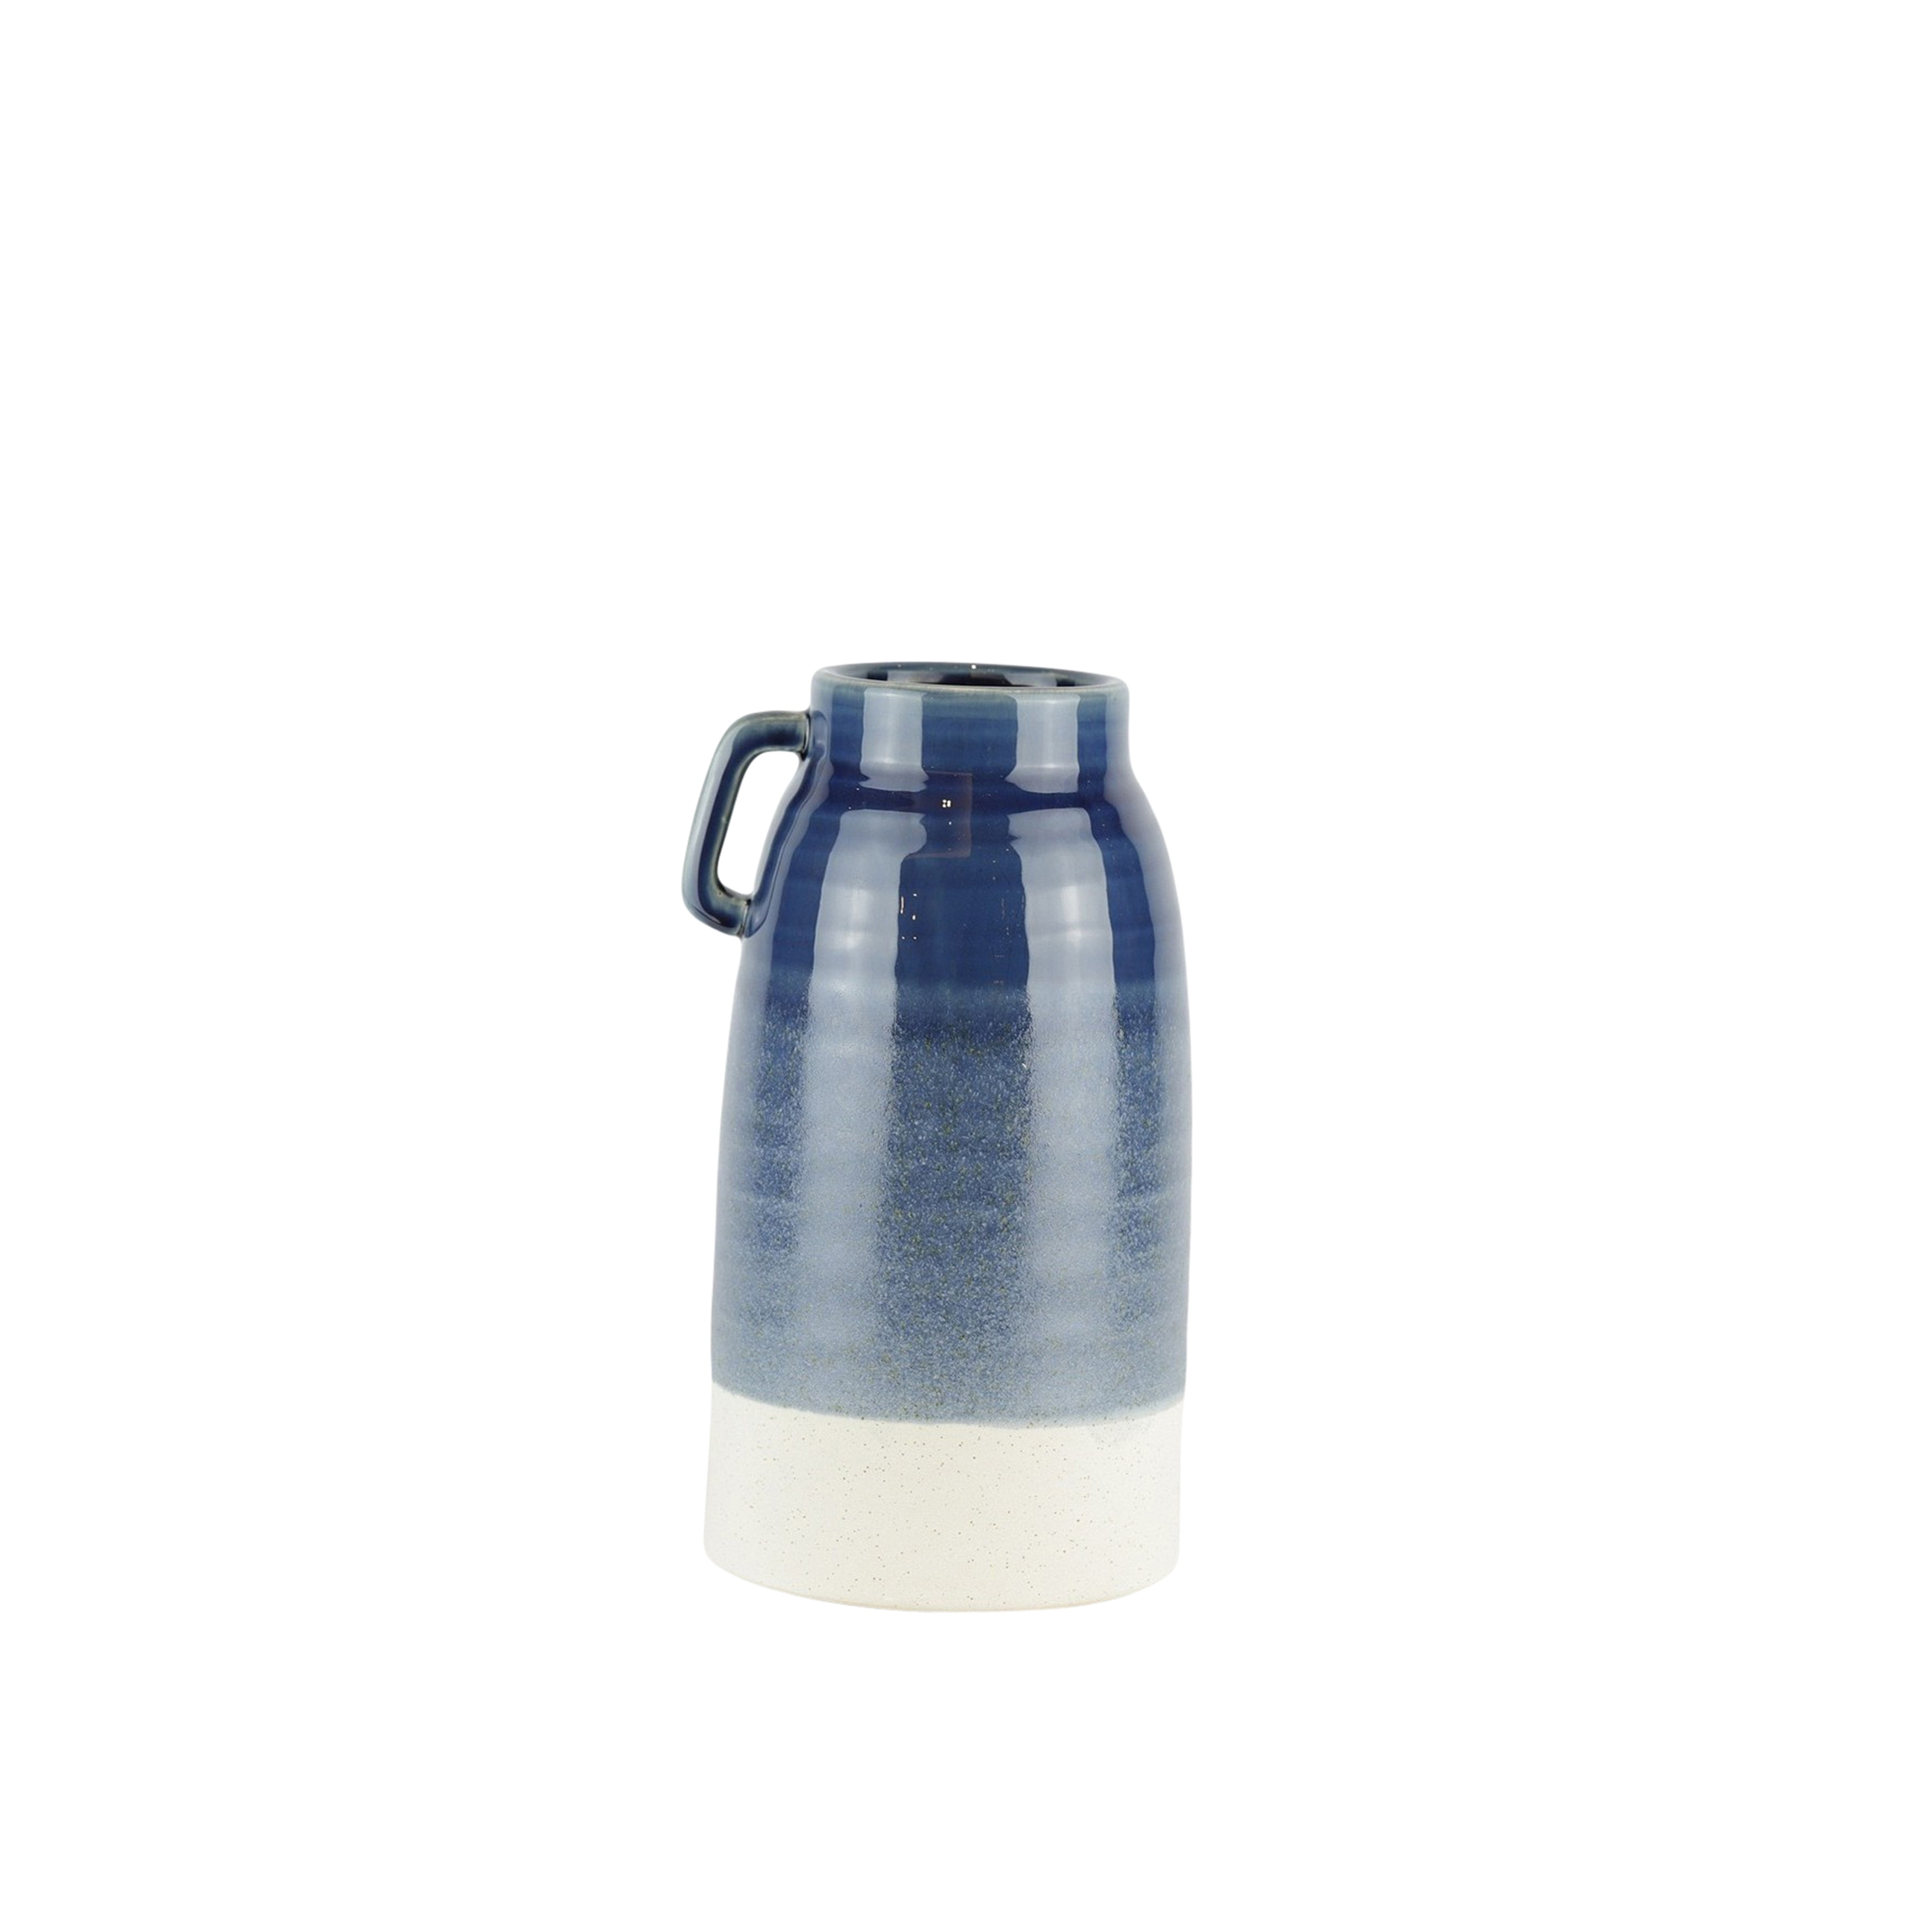 Dual Tone Decorative Ceramic Vase with Handle, Small, Blue and White